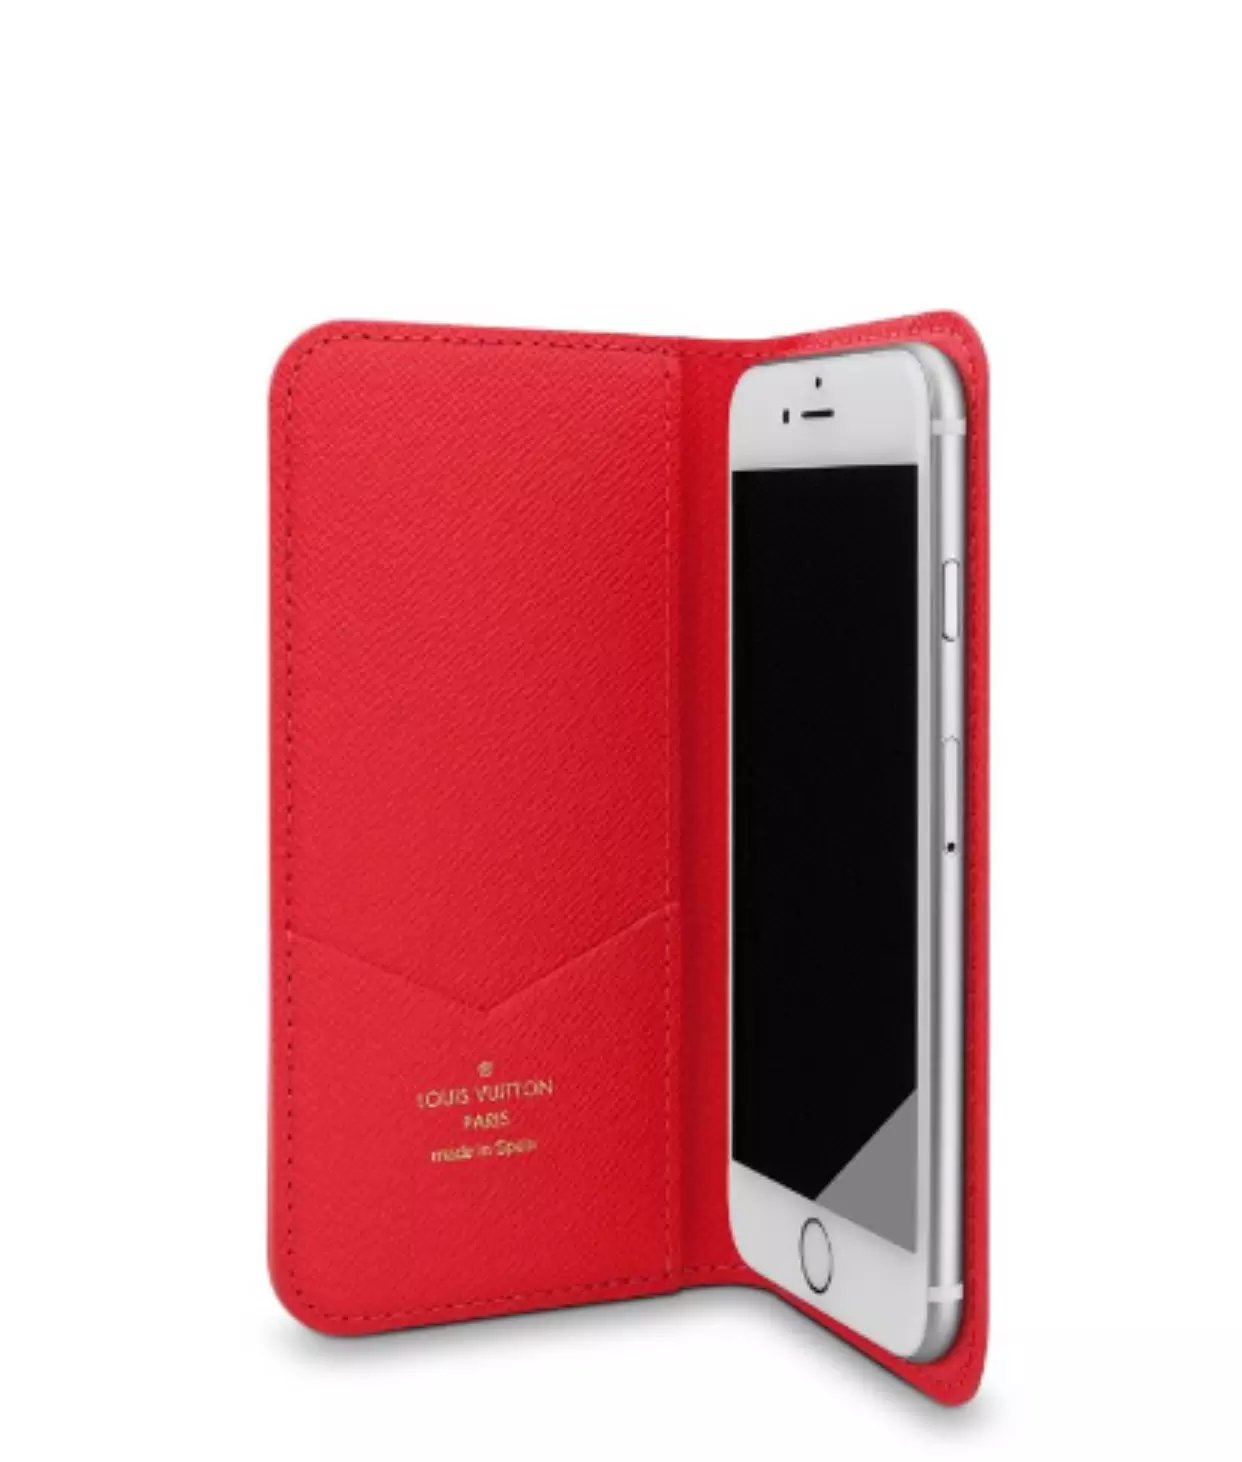 iphone hülle selber machen iphone hülle selber gestalten günstig Louis Vuitton iphone7 Plus hülle iphone 7 Plus flip ca7 ledertasche cover für iphone gussform iphone 6 größe die schönsten iphone 7 Plus hüllen iphone ca7 foto